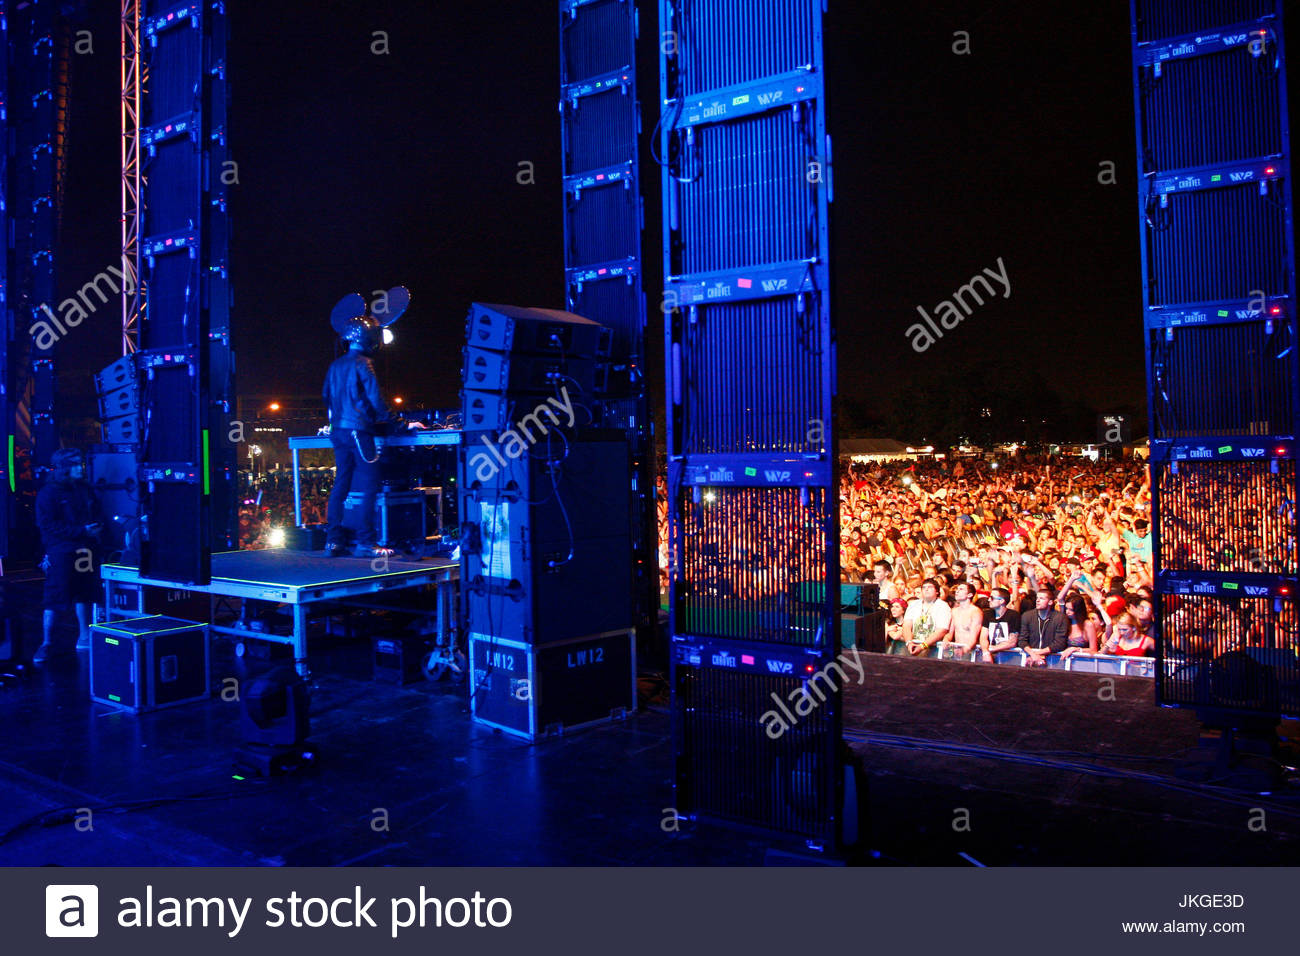 Deadmau5 aka joel thomas zimmerman deadmau5 also known as joel deadmau5 also known as joel thomas zimmerman performs in tampa headling the gift music festival in tampa fl deadmau5 made forbes magazine list of the negle Choice Image